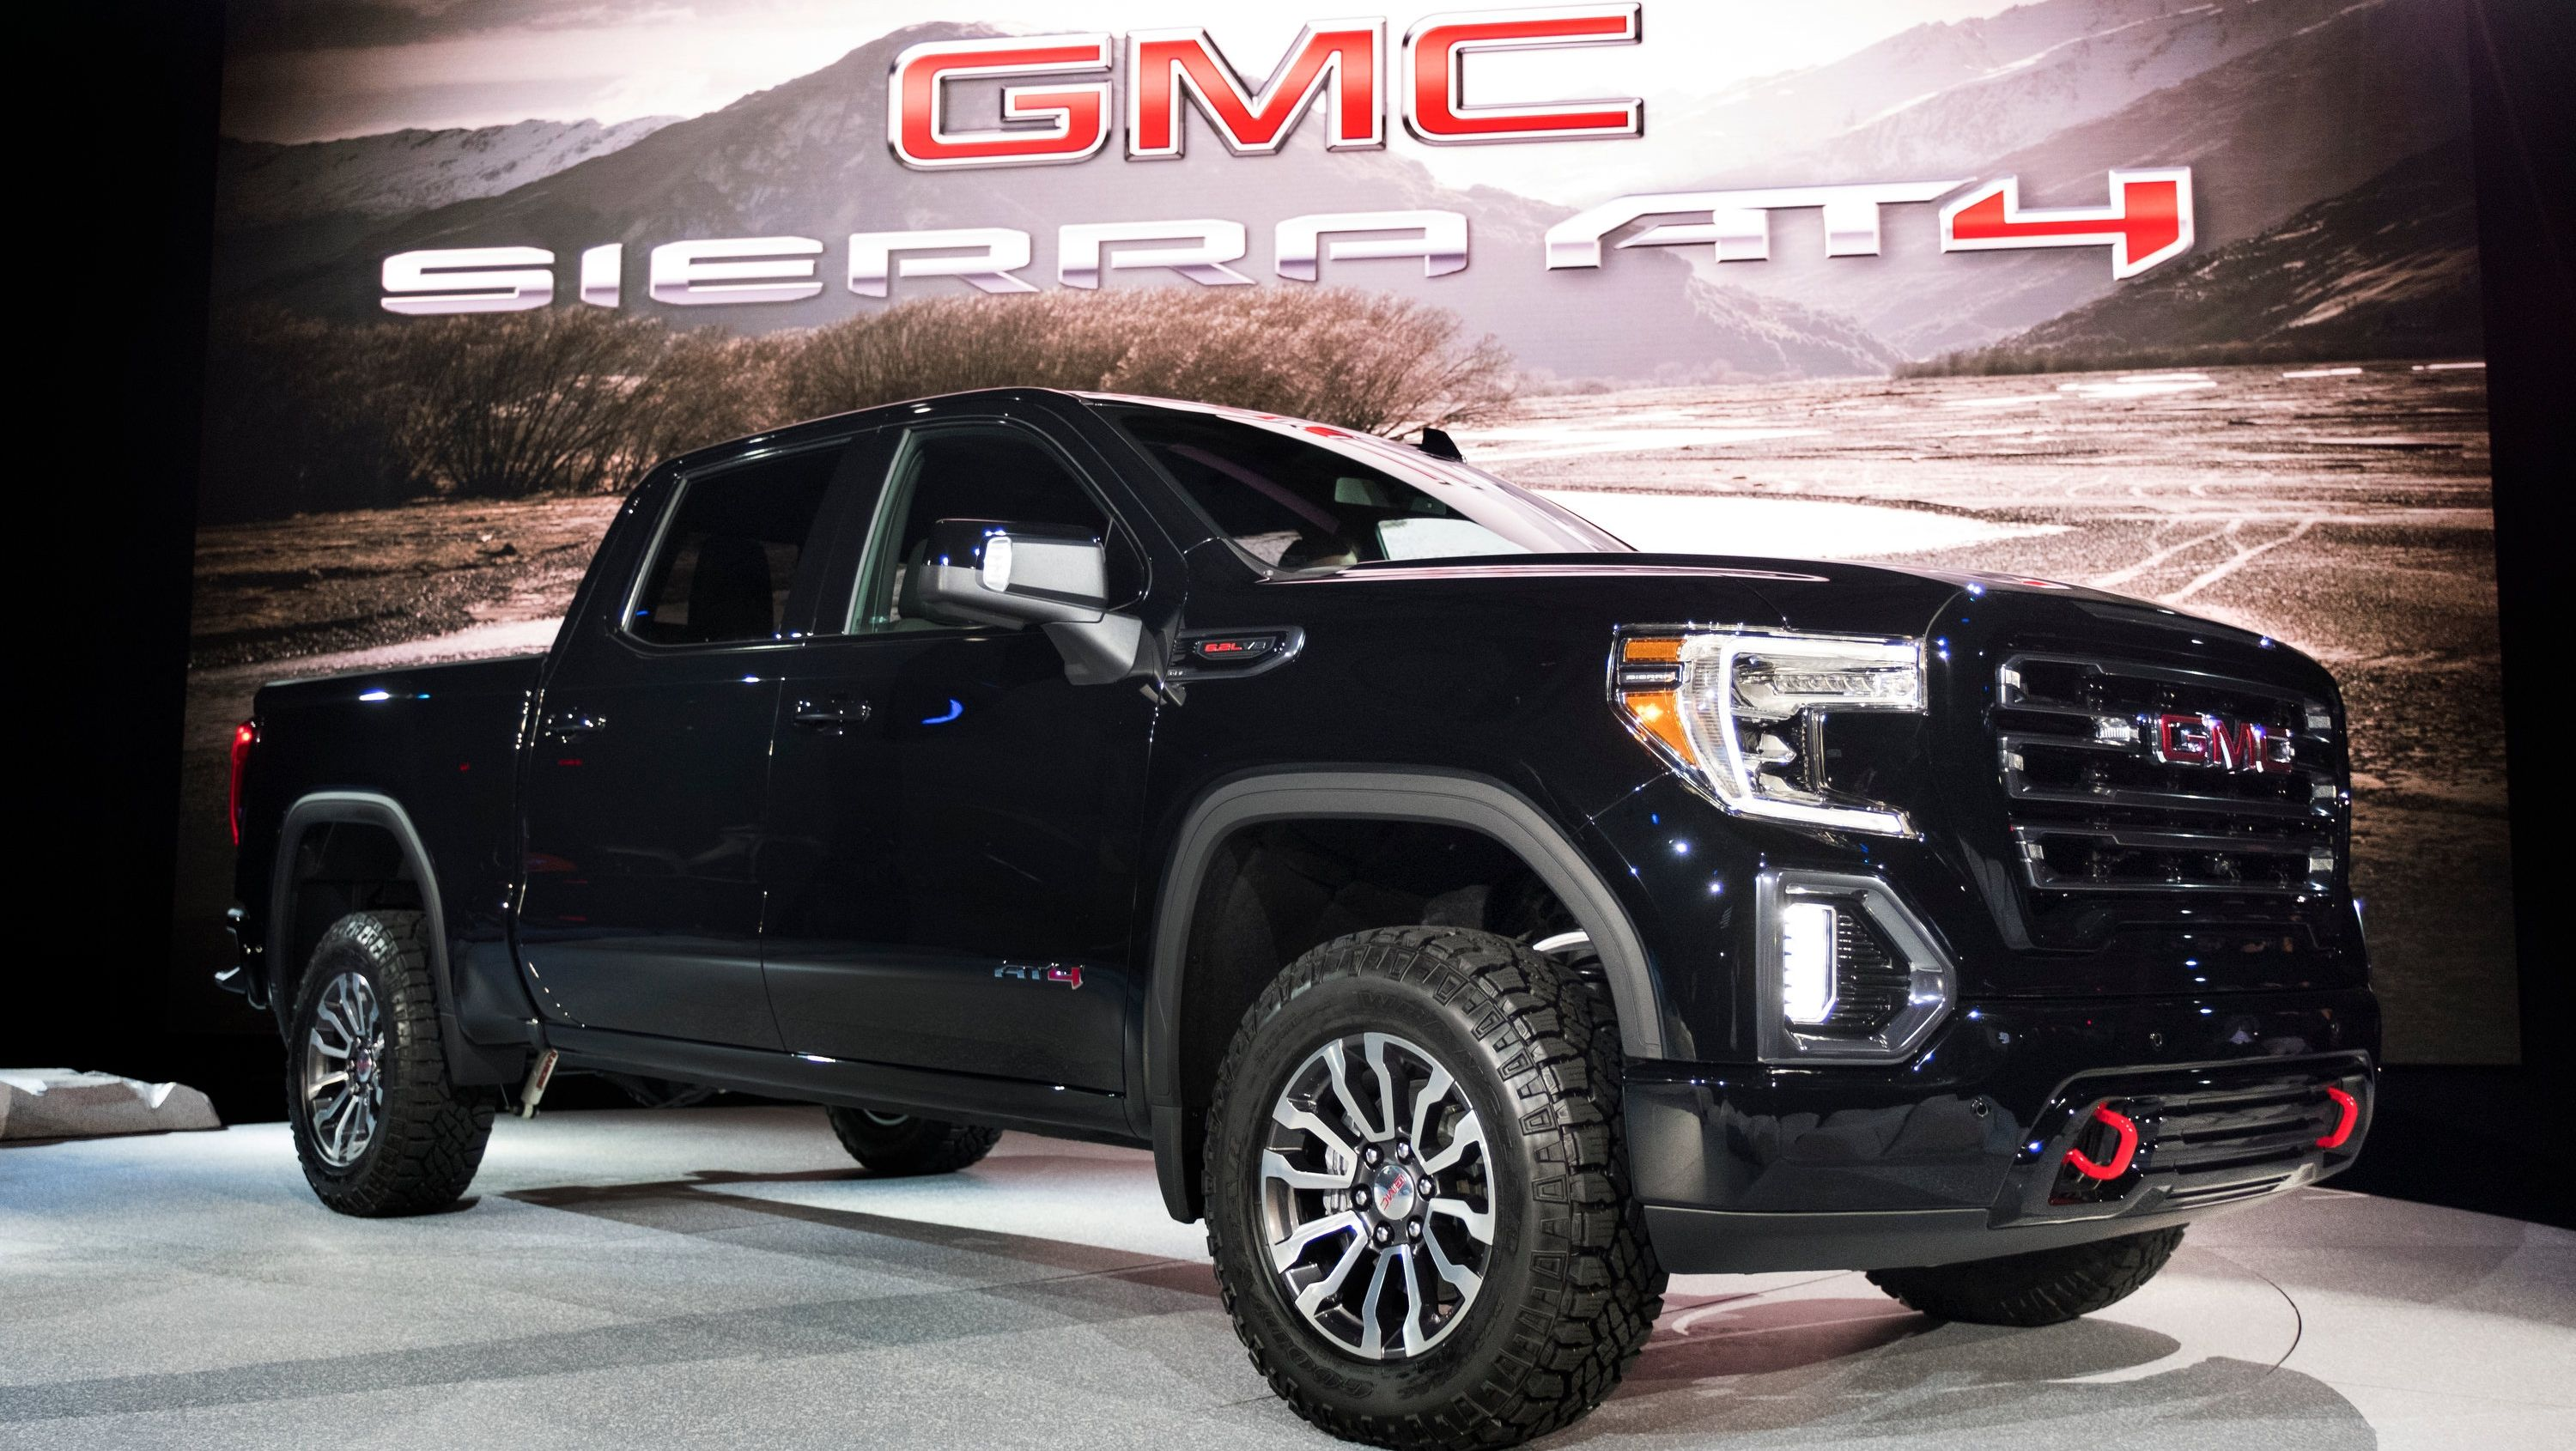 The Gmc Sierra At4 Is Here To Put The Hurt On The Ford F 150